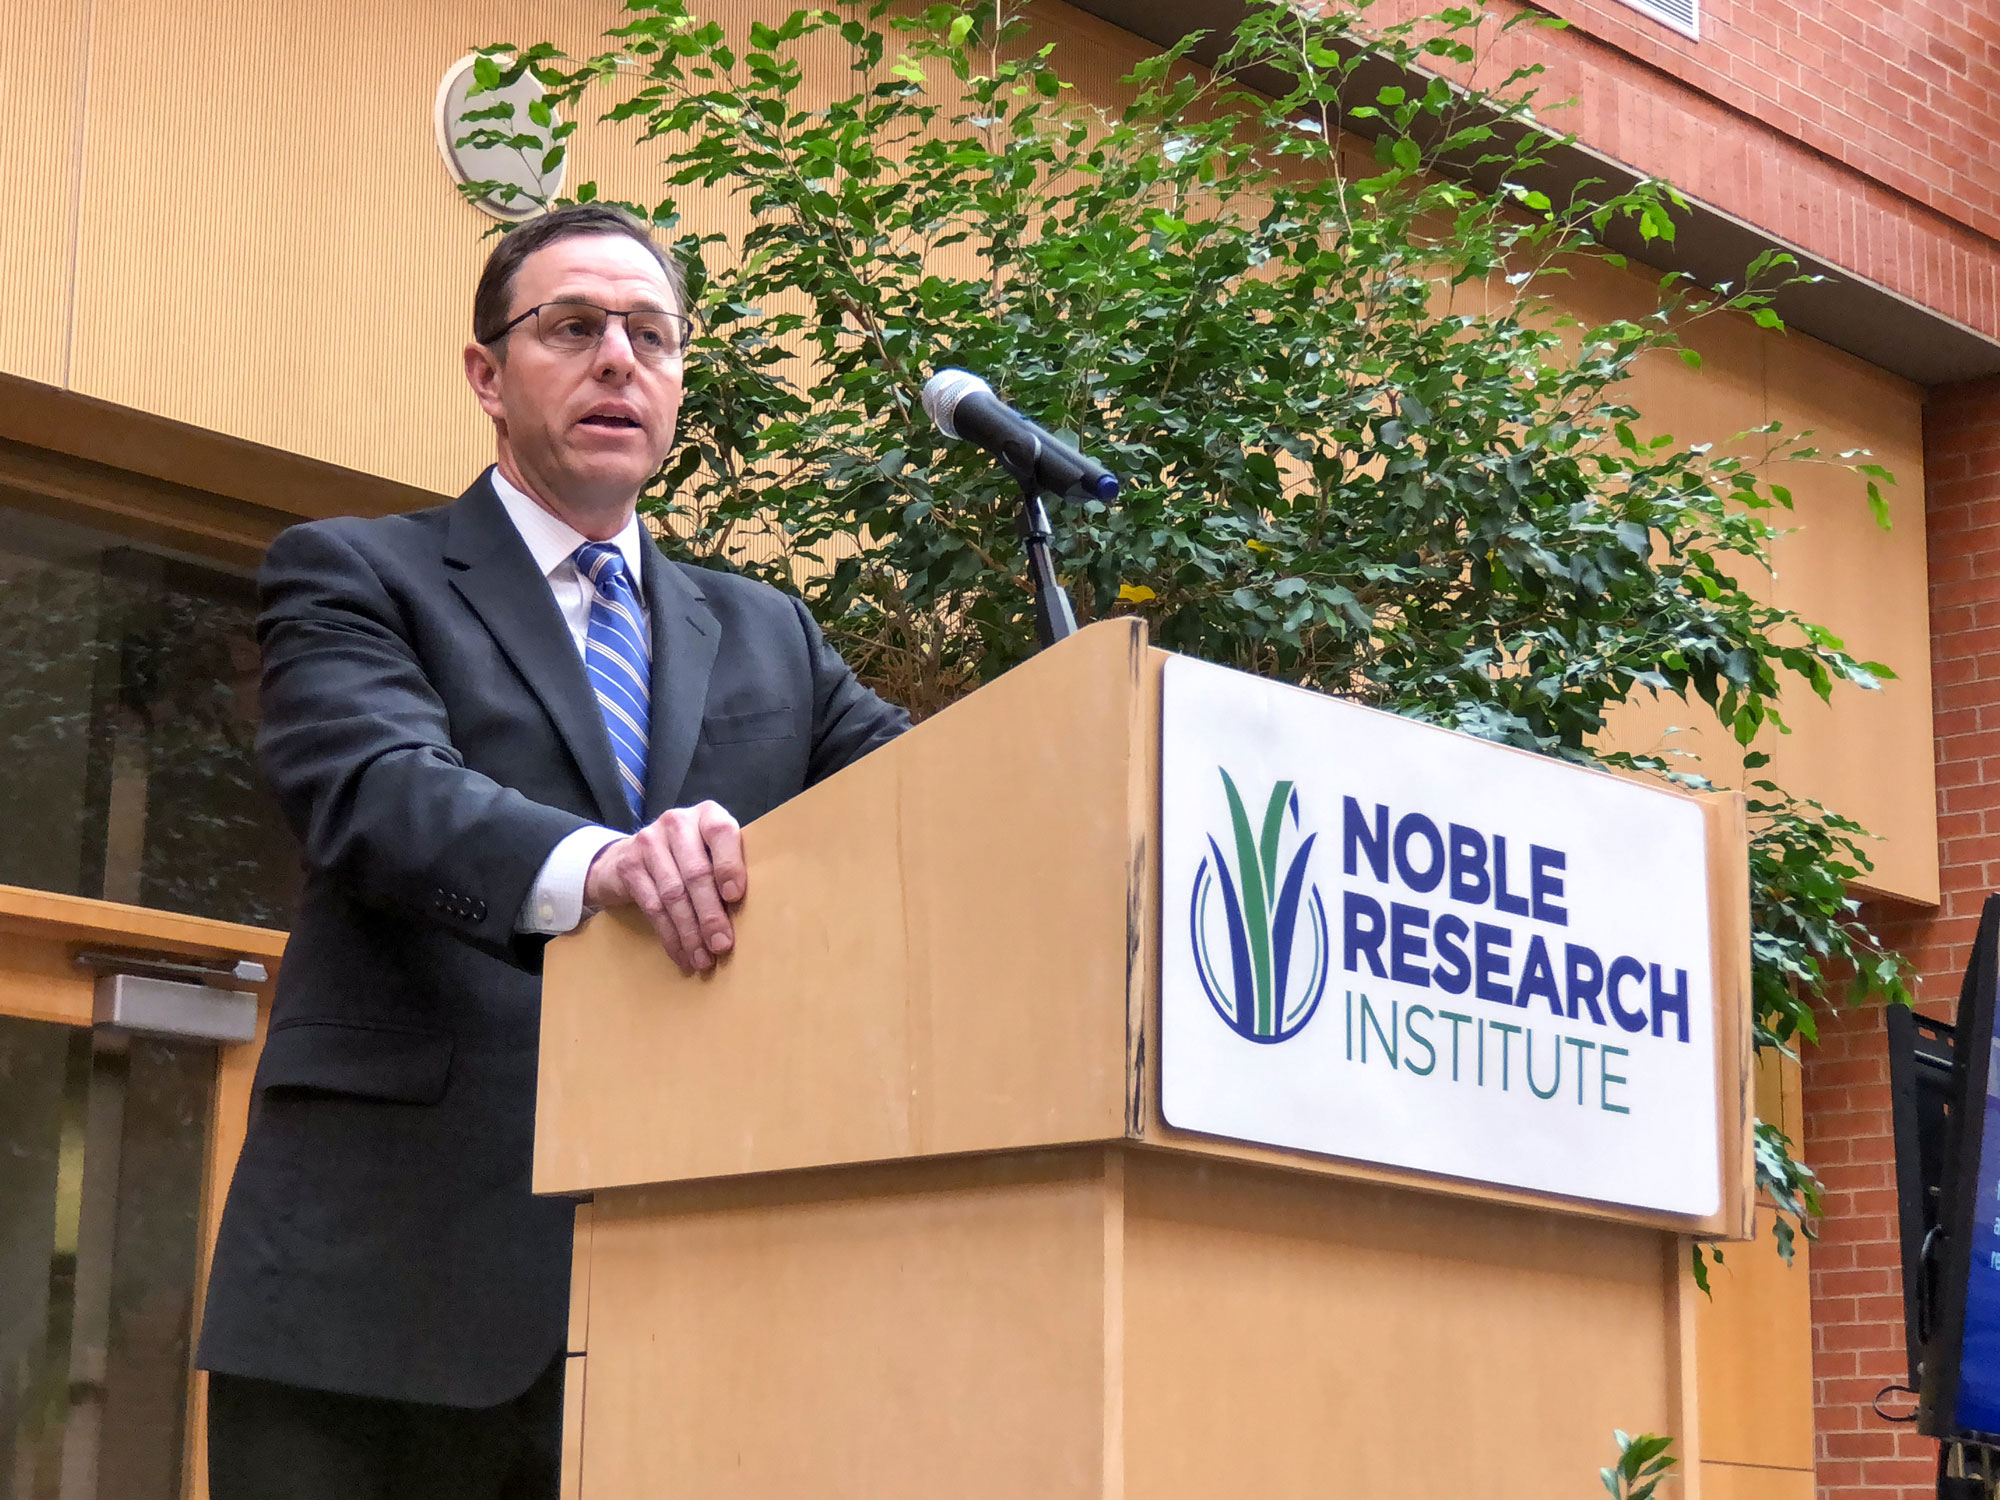 Steven Rhines addresses the Noble Research Institute employees. He becomes the ninth president in Noble's 74-year history.